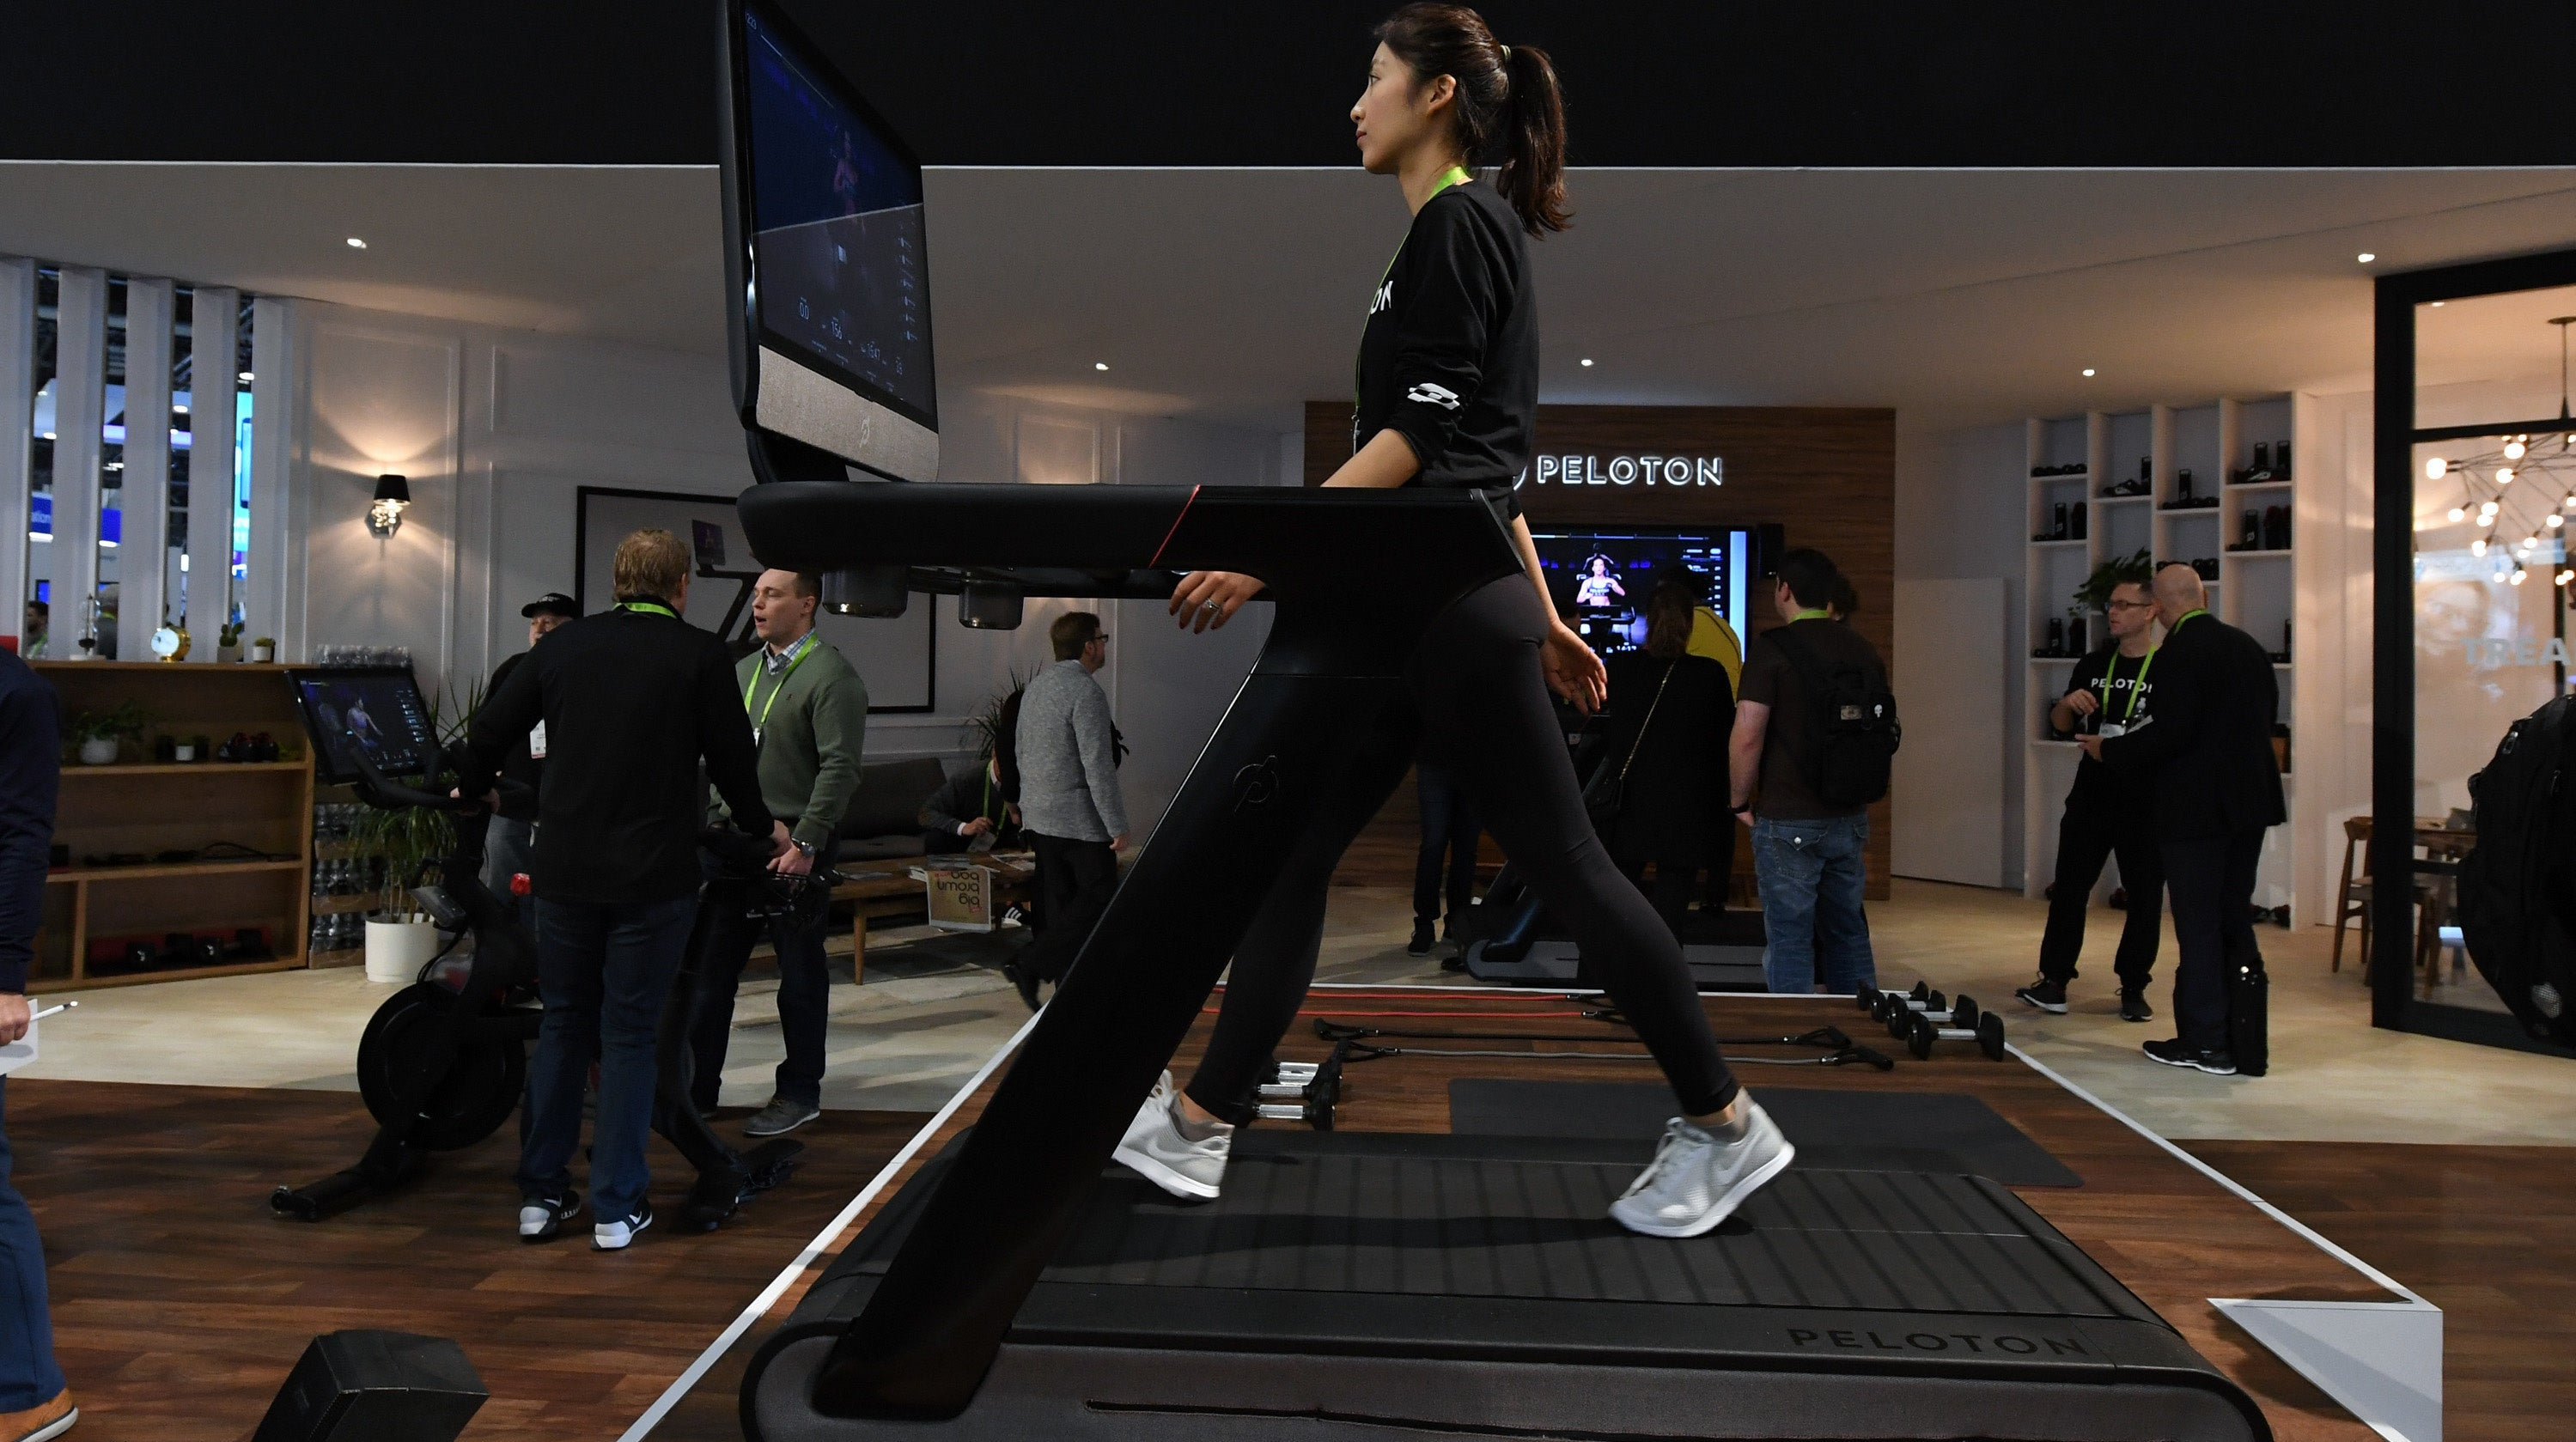 If You Want To Buy A Treadmill, Peloton Can't Help Right Now